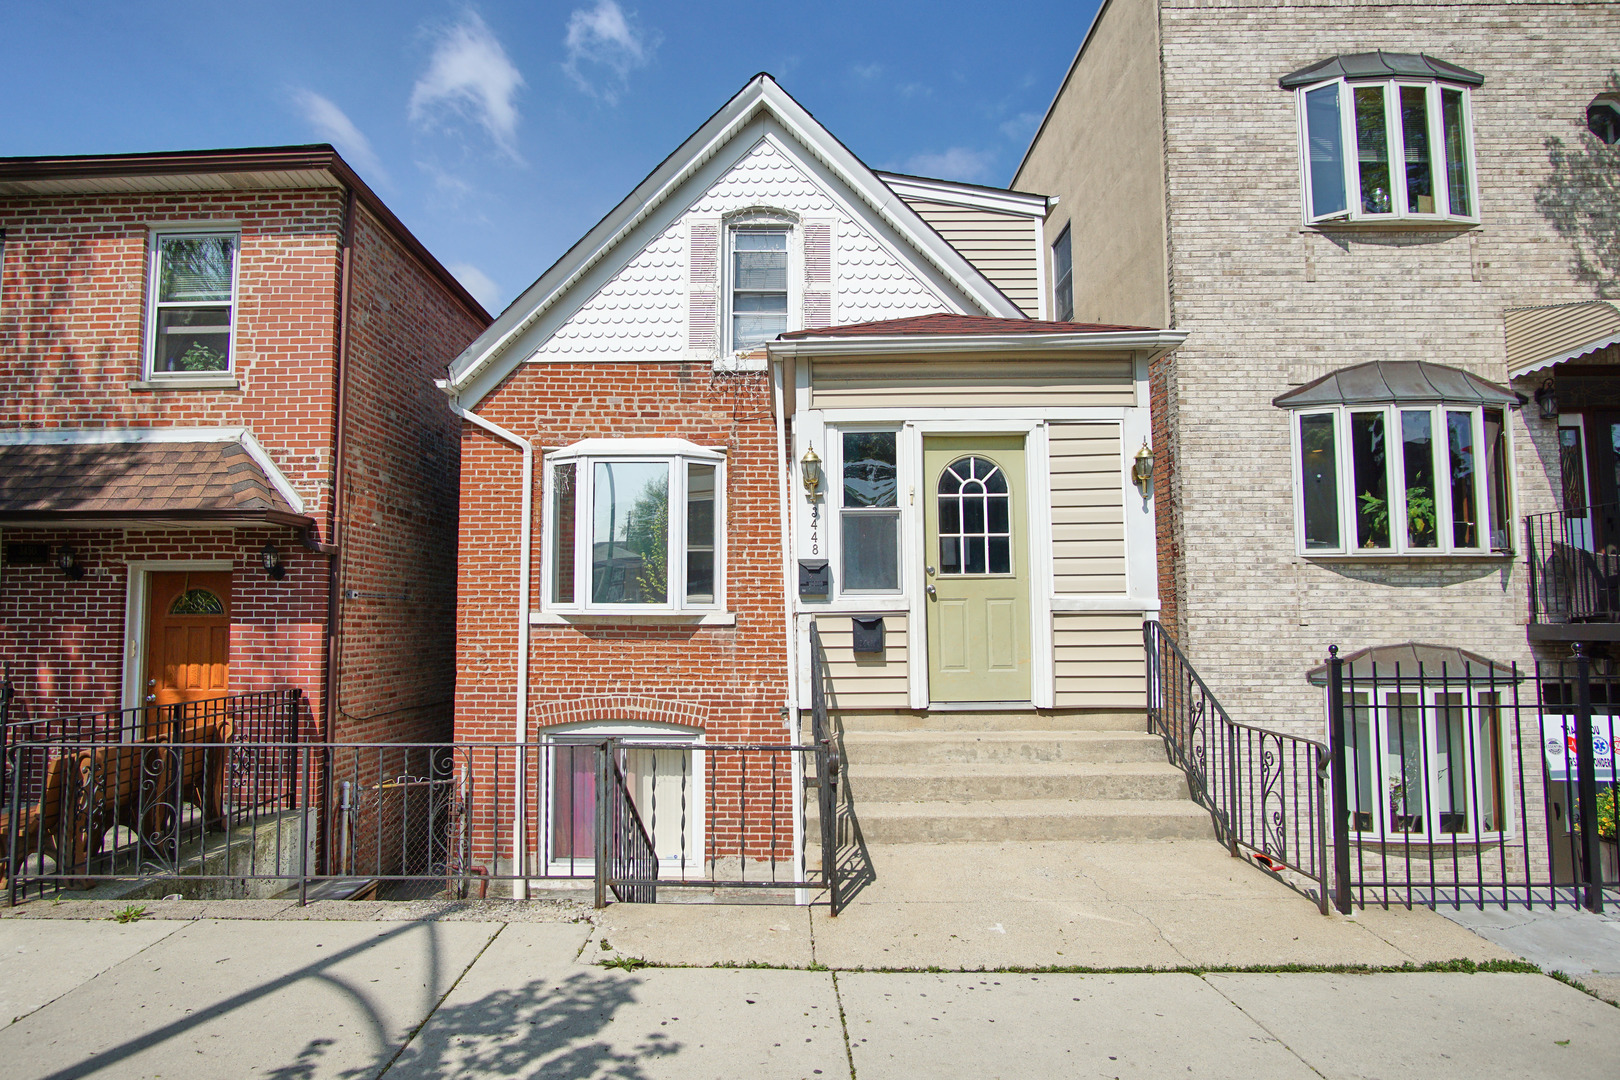 Great INVESTMENT property! This is a unique two-story home nestled in McKinley Park. TWO potential i